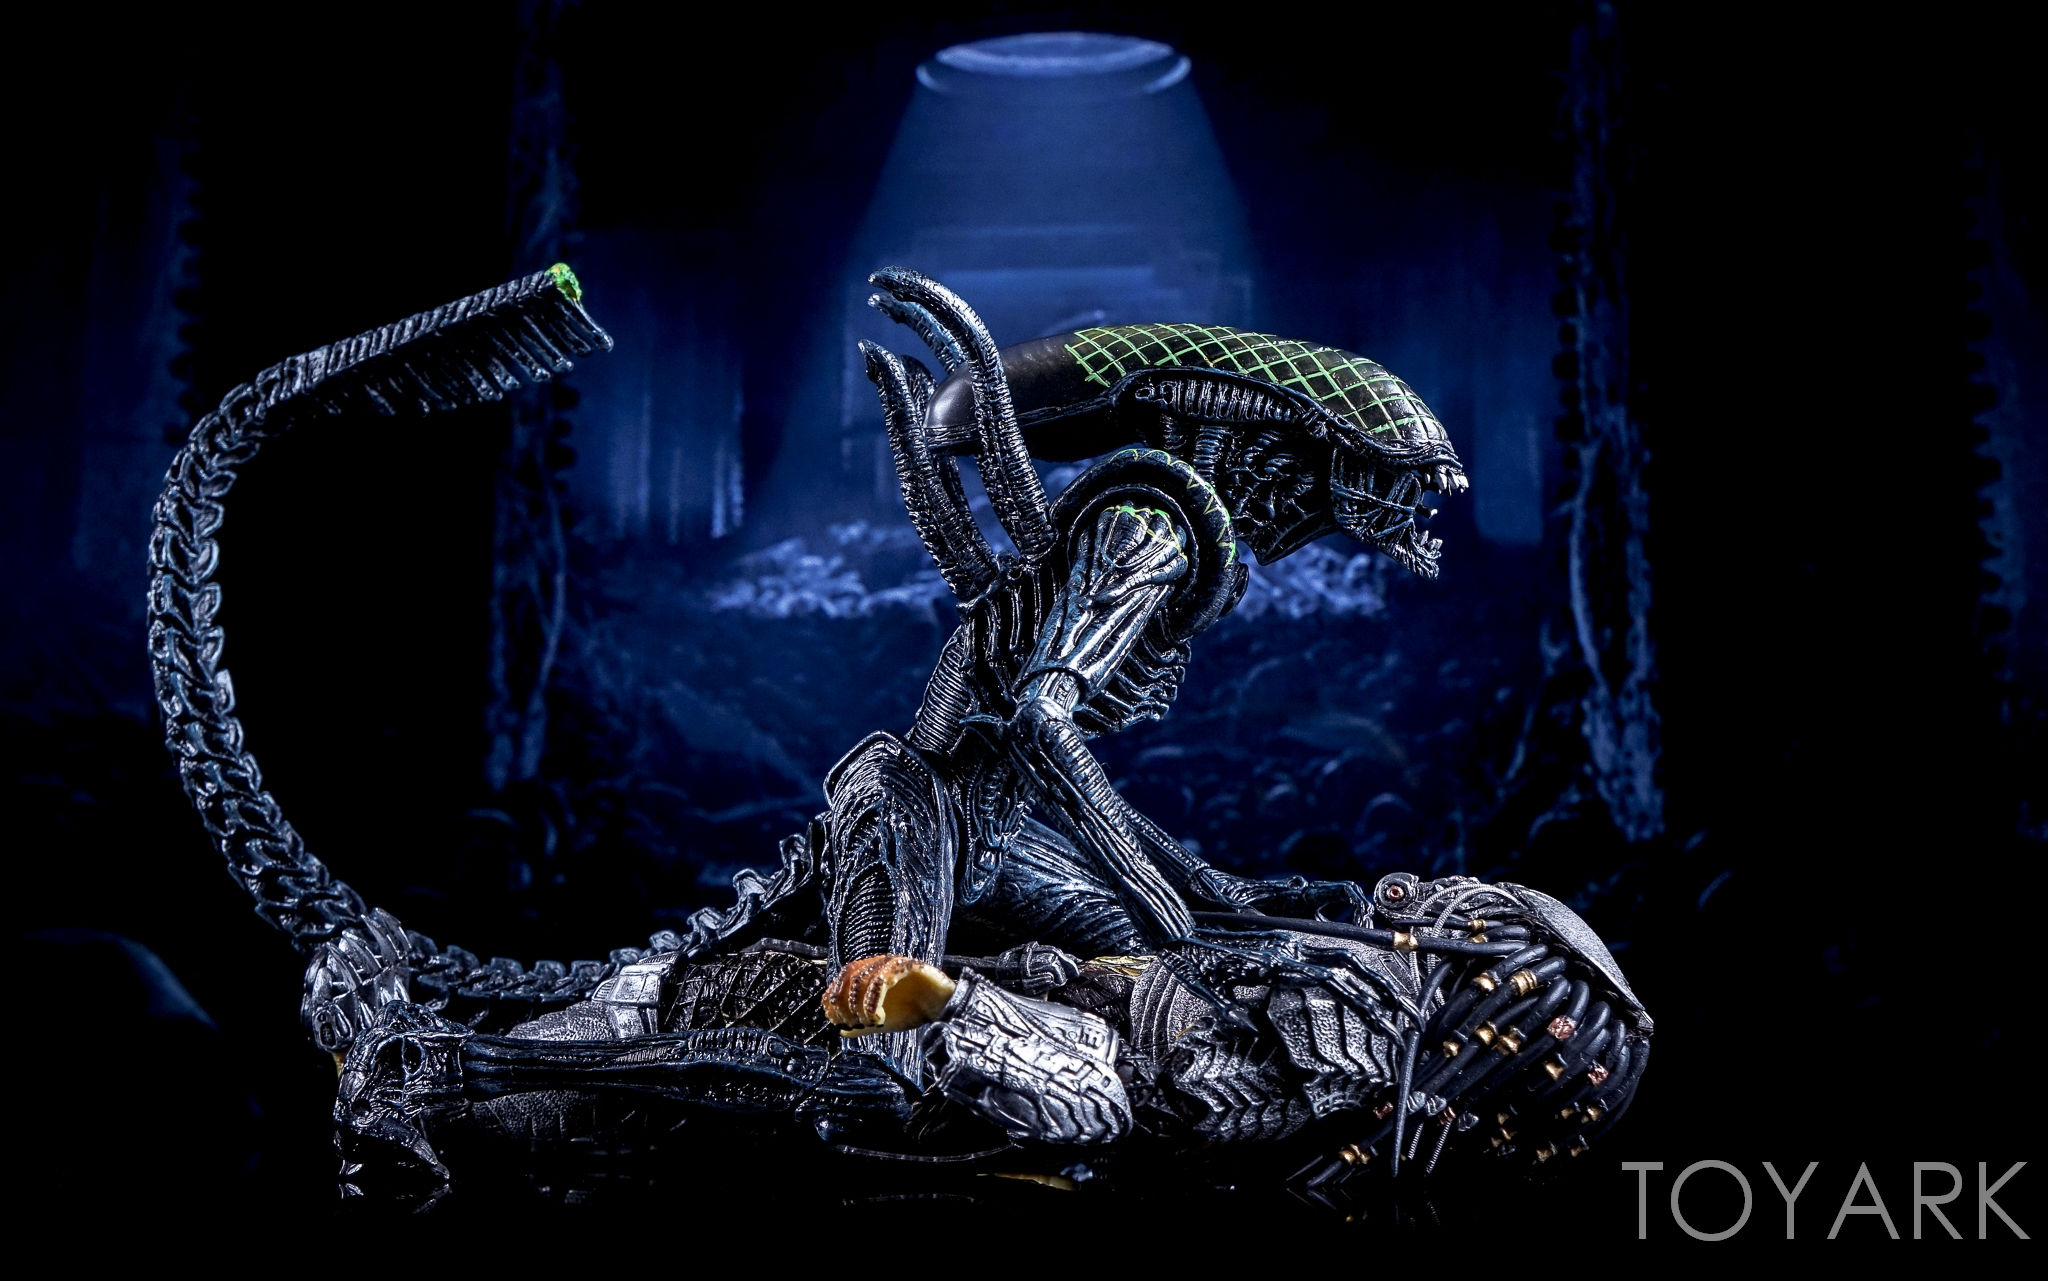 http://news.toyark.com/wp-content/uploads/sites/4/2016/10/NECA-AvP-Rivalry-Reborn-Set-070.jpg